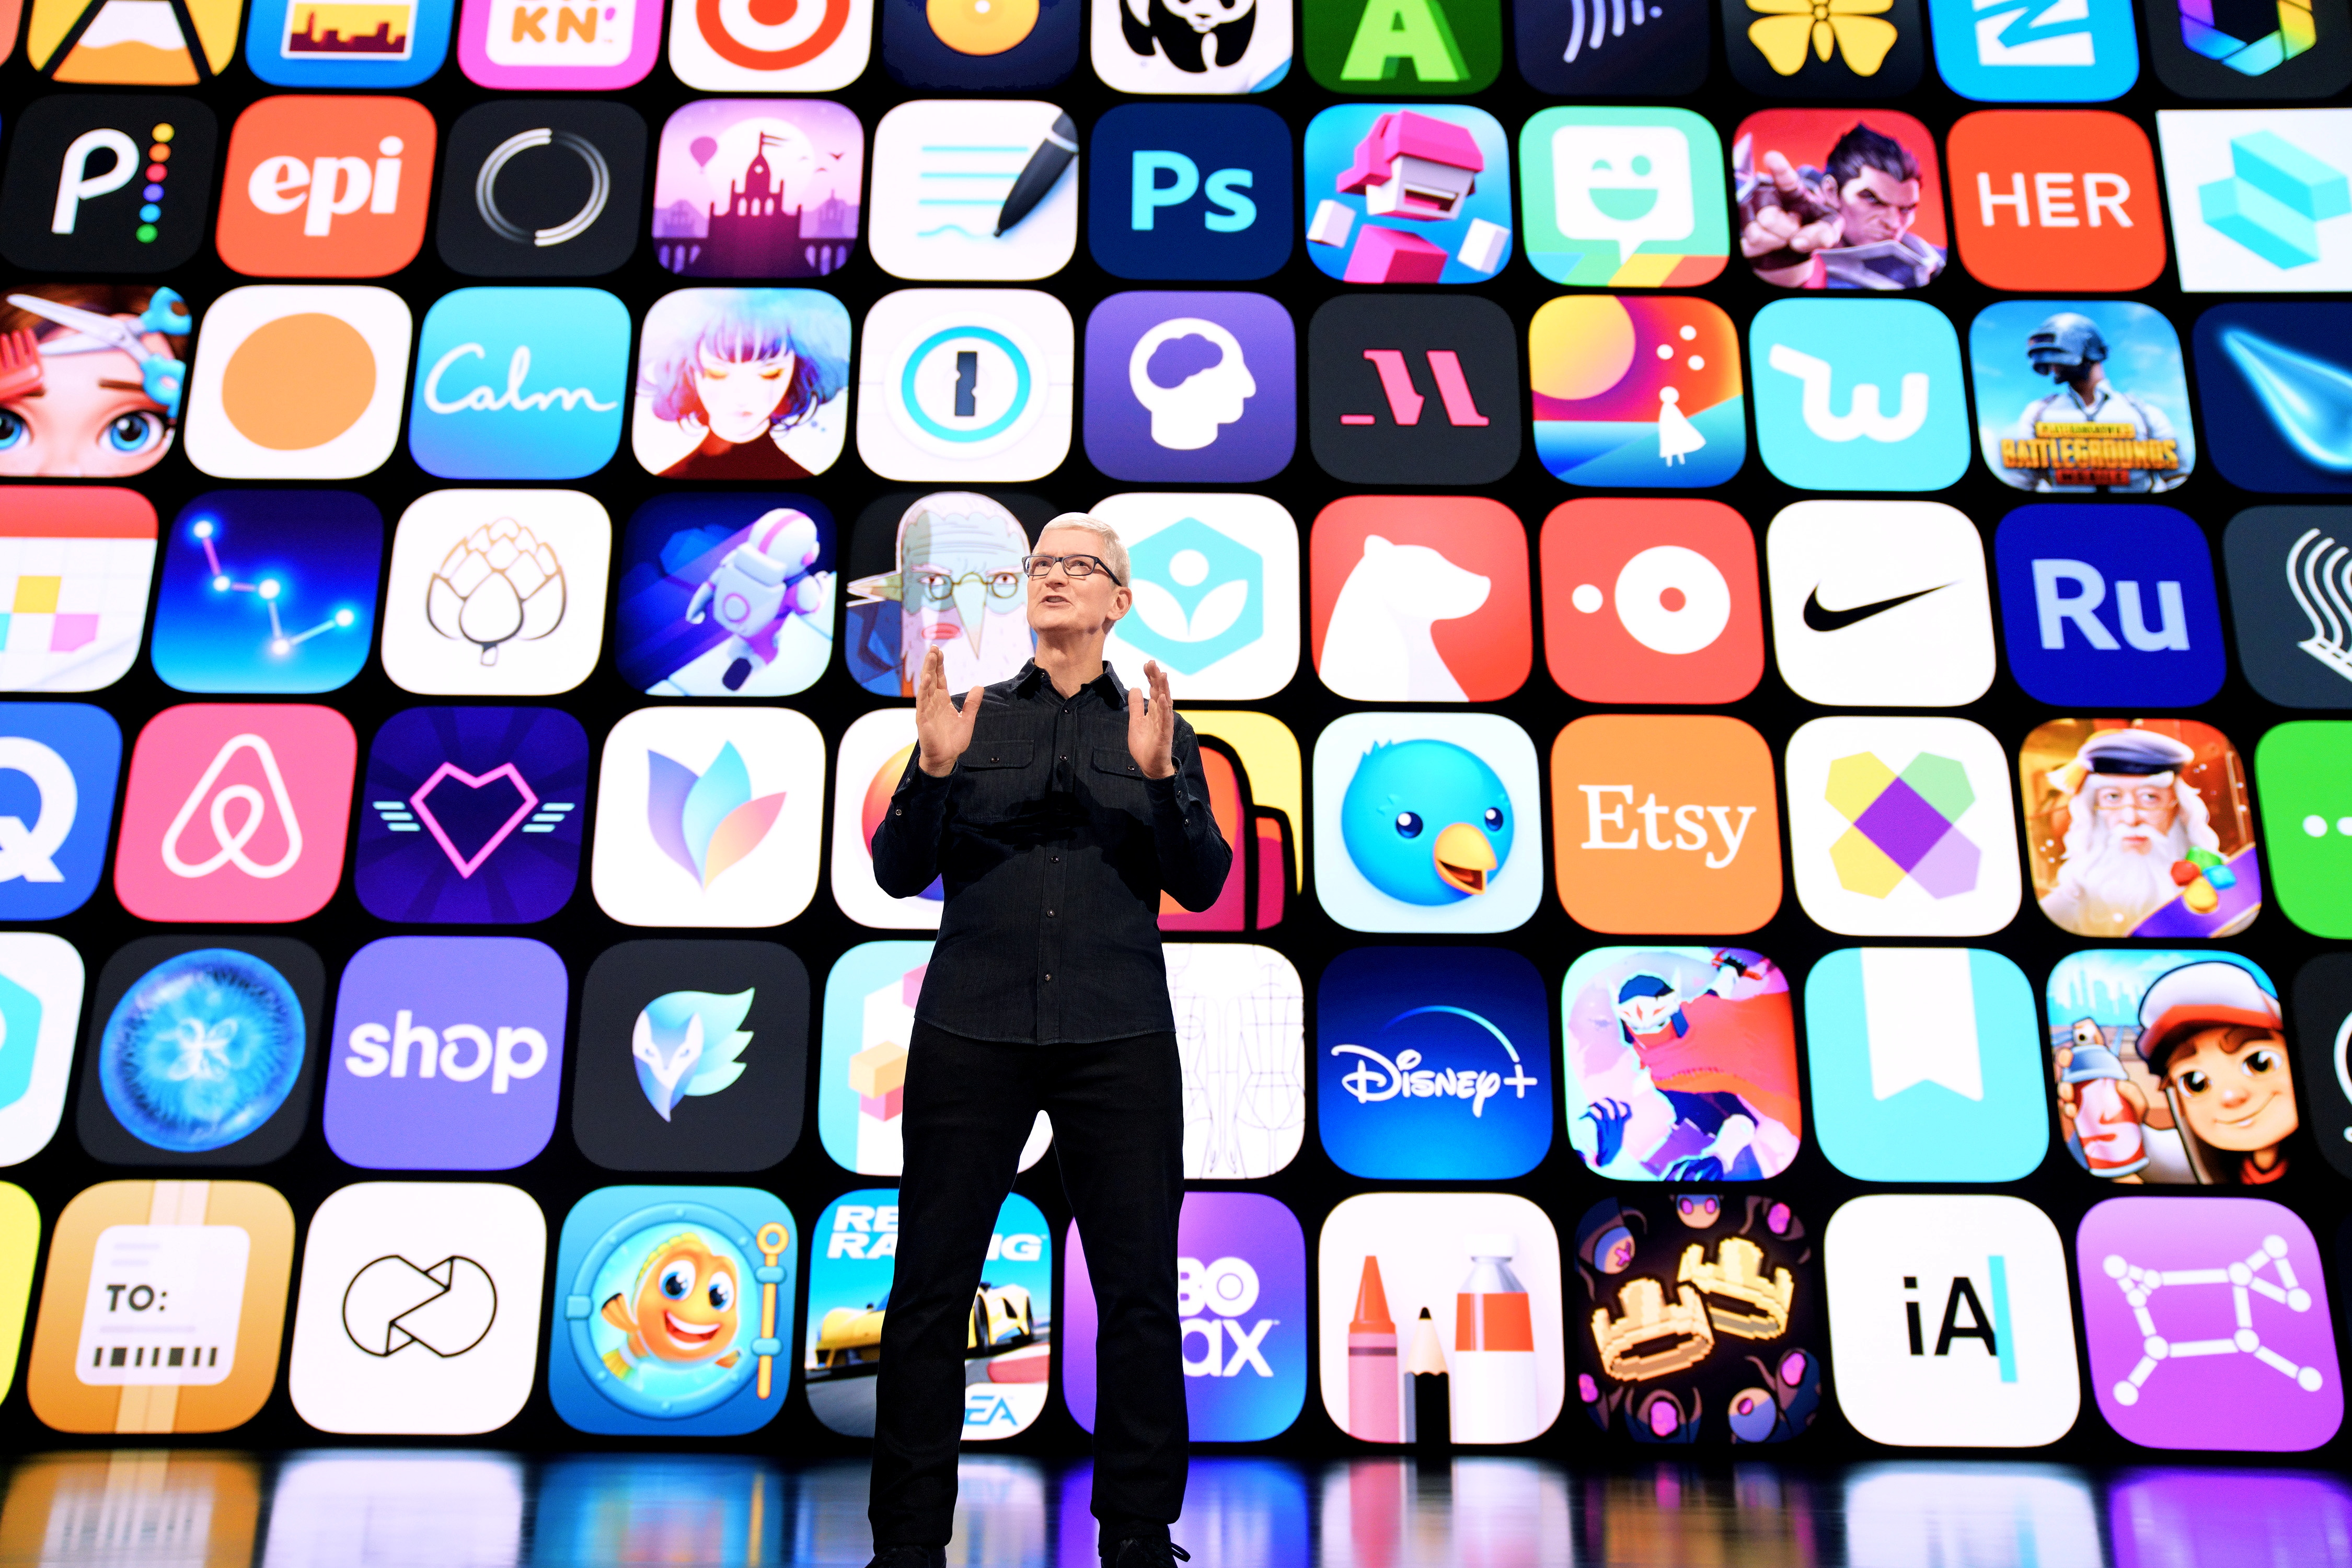 Apple to increase user privacy, rivals accuse